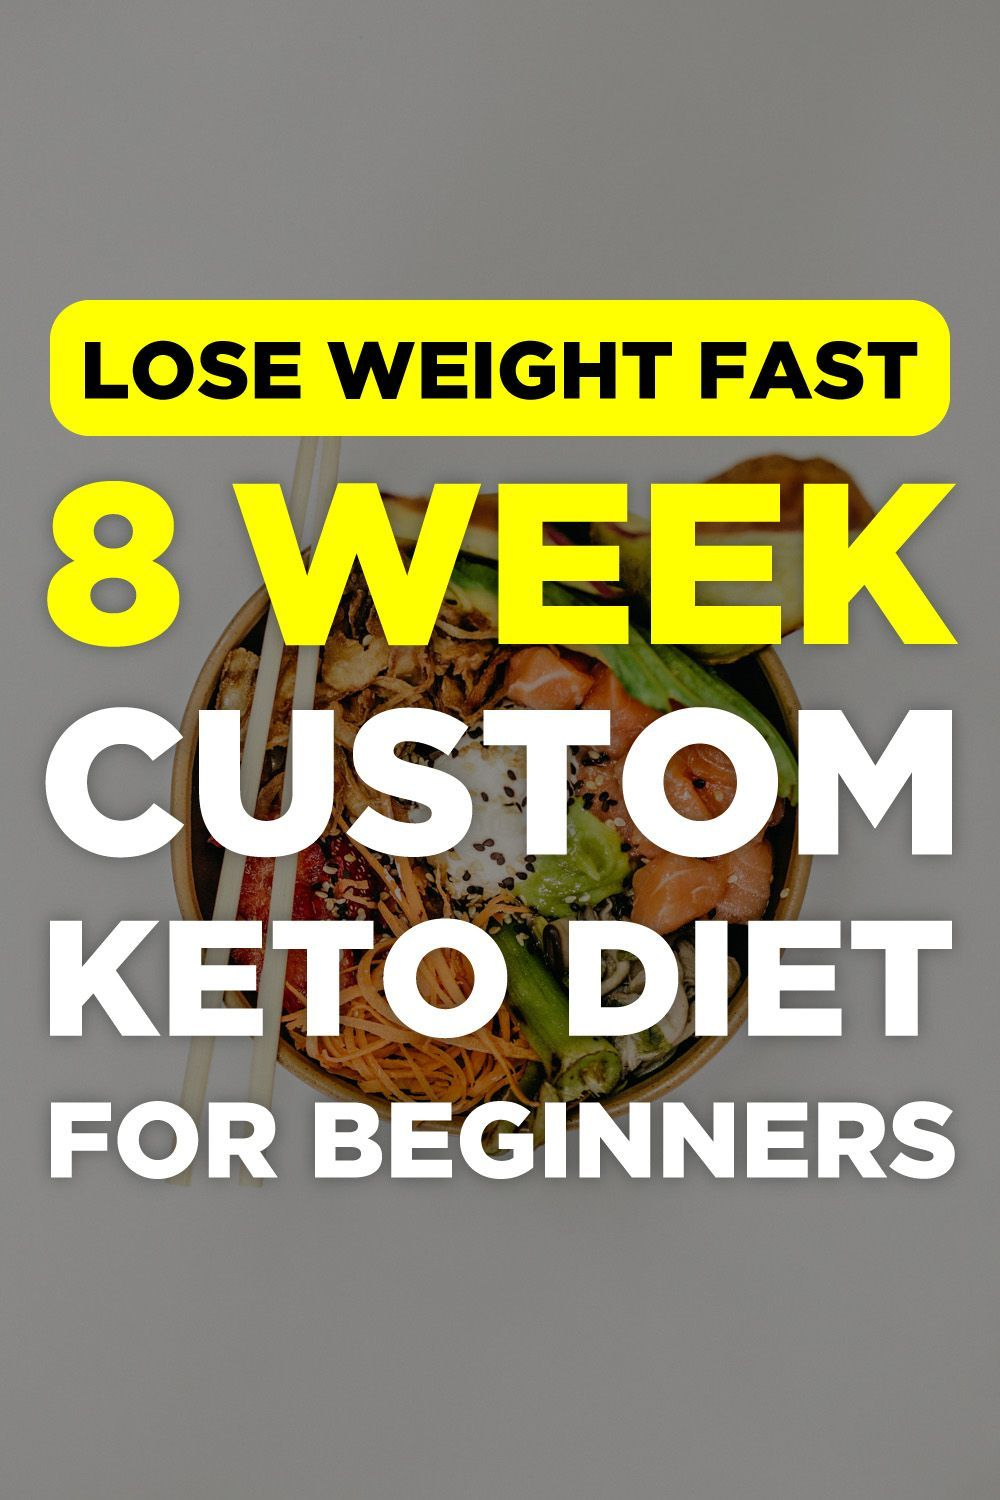 8 Week Keto Diet, pancreatic diet recipes, 	what to eat to lose weight fast, 	keto diets,  #myfitnesspalrecipes pancreatic diet recipes, 	what to eat to lose weight fast, 	keto diets,  lose weight diet plan, 	healthy lunch for weight loss, 	keto diet for vegetarians,  candida diet dinner, 	weight loss hypothyroid, 	weight loss medications,  weight loss eating plan, 	modified paleo diet, 	myfitnesspal recipes,  massive weight loss, 	weight loss motivation tips, 	keto diet kidney,  low carb idea, #myfitnesspalrecipes